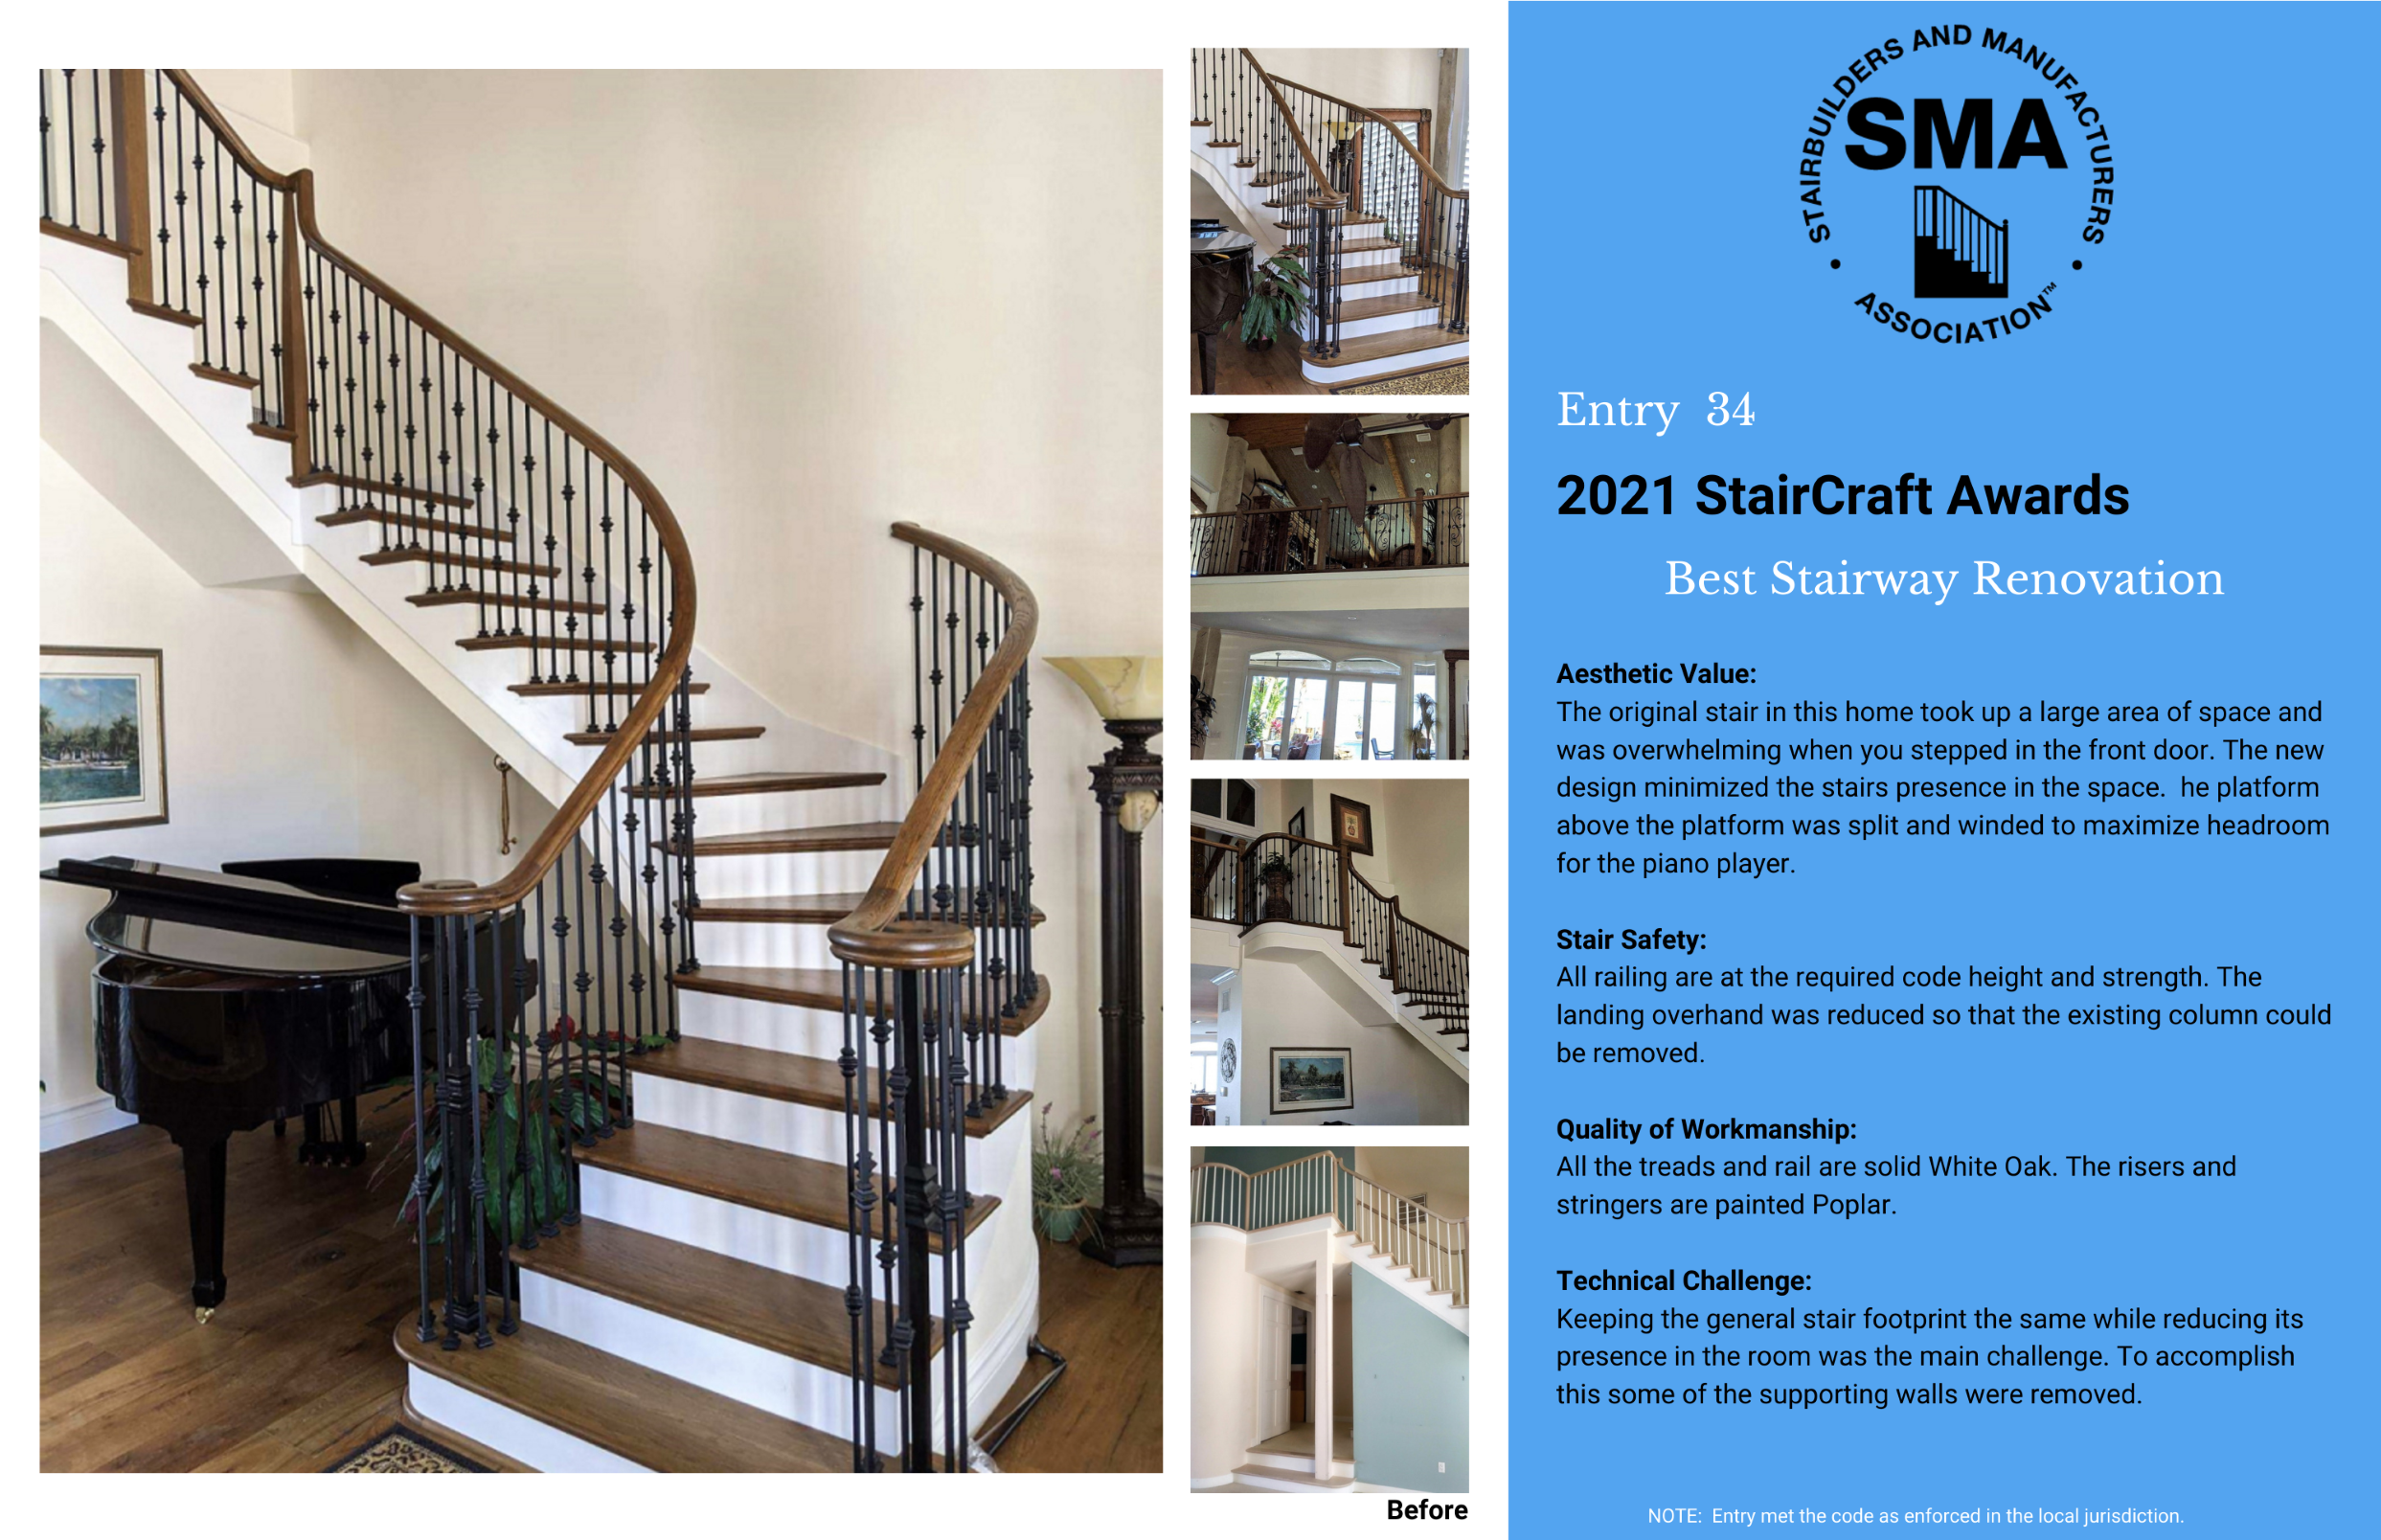 2021 StairCraft Awards Entry 34